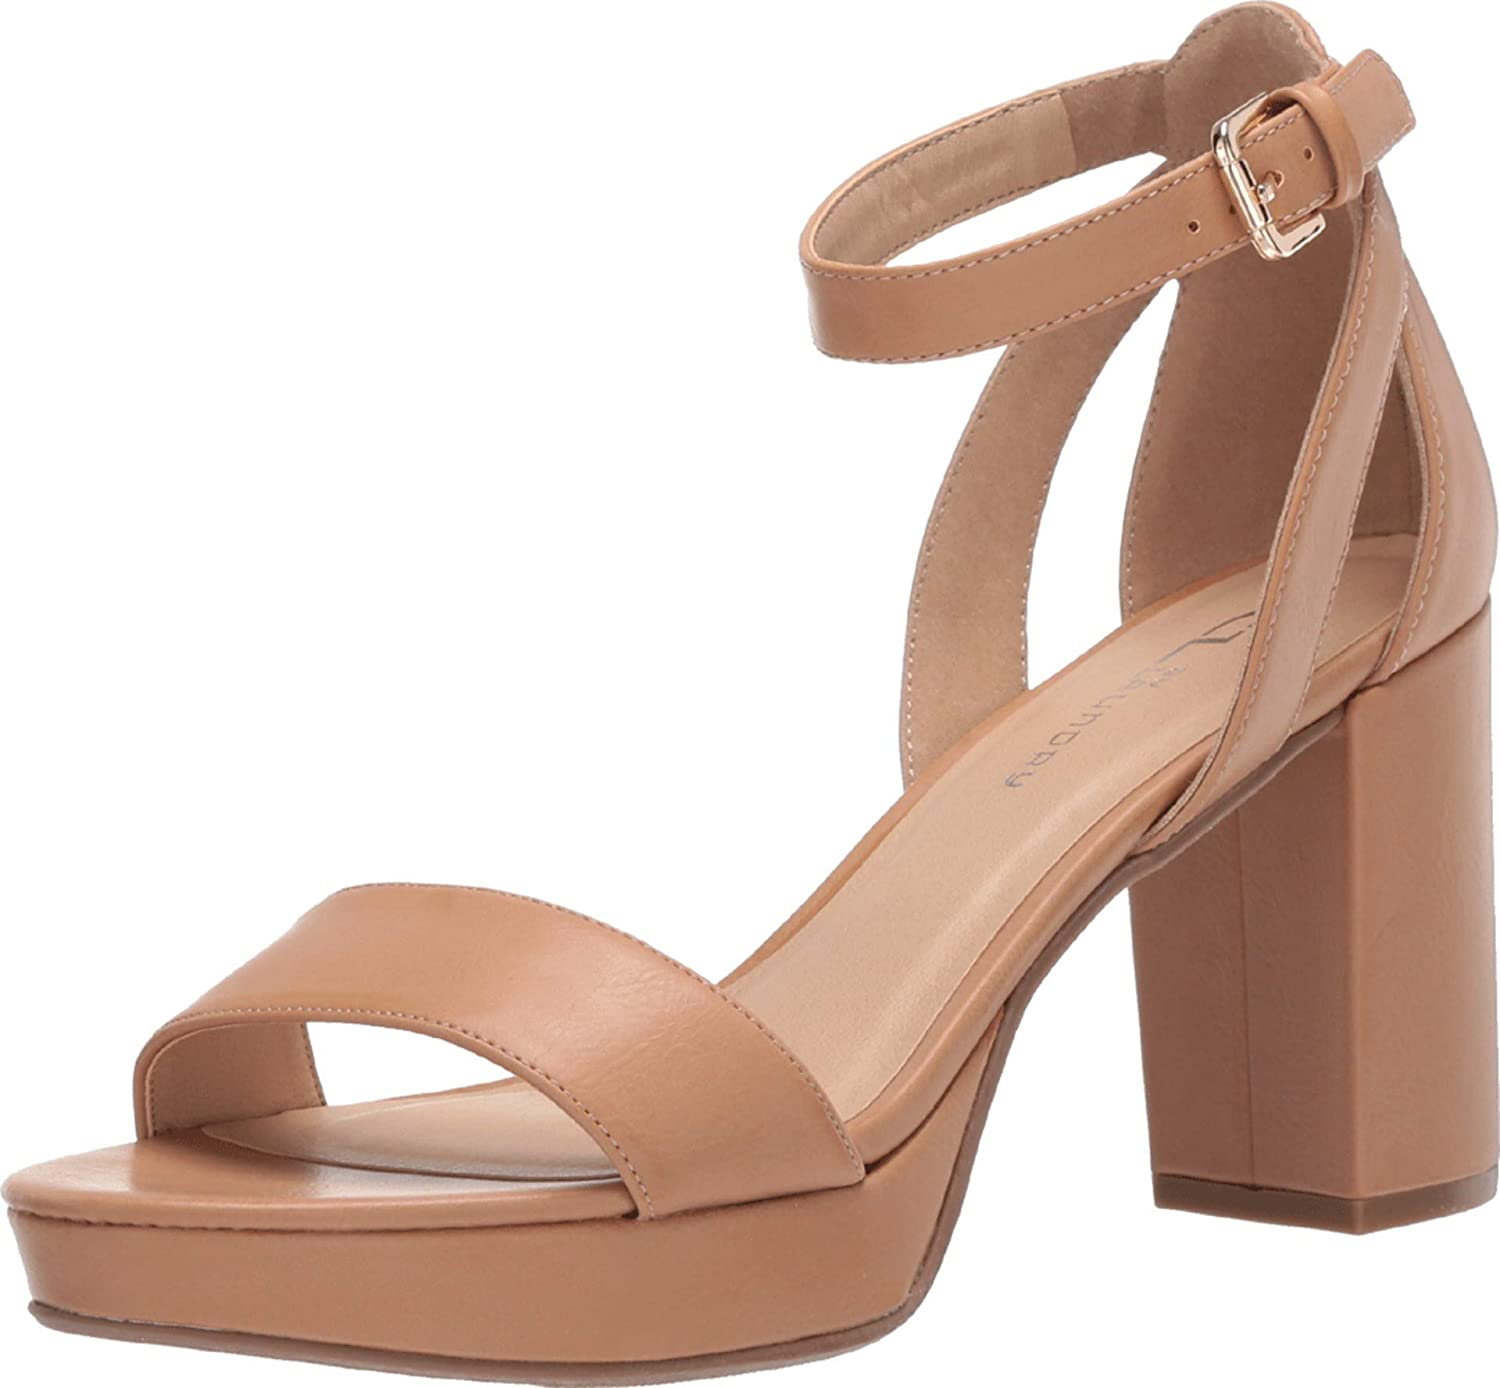 CL by Chinese Laundry Sandal Heeled Women's Platform SALENEW very popular Safety and trust